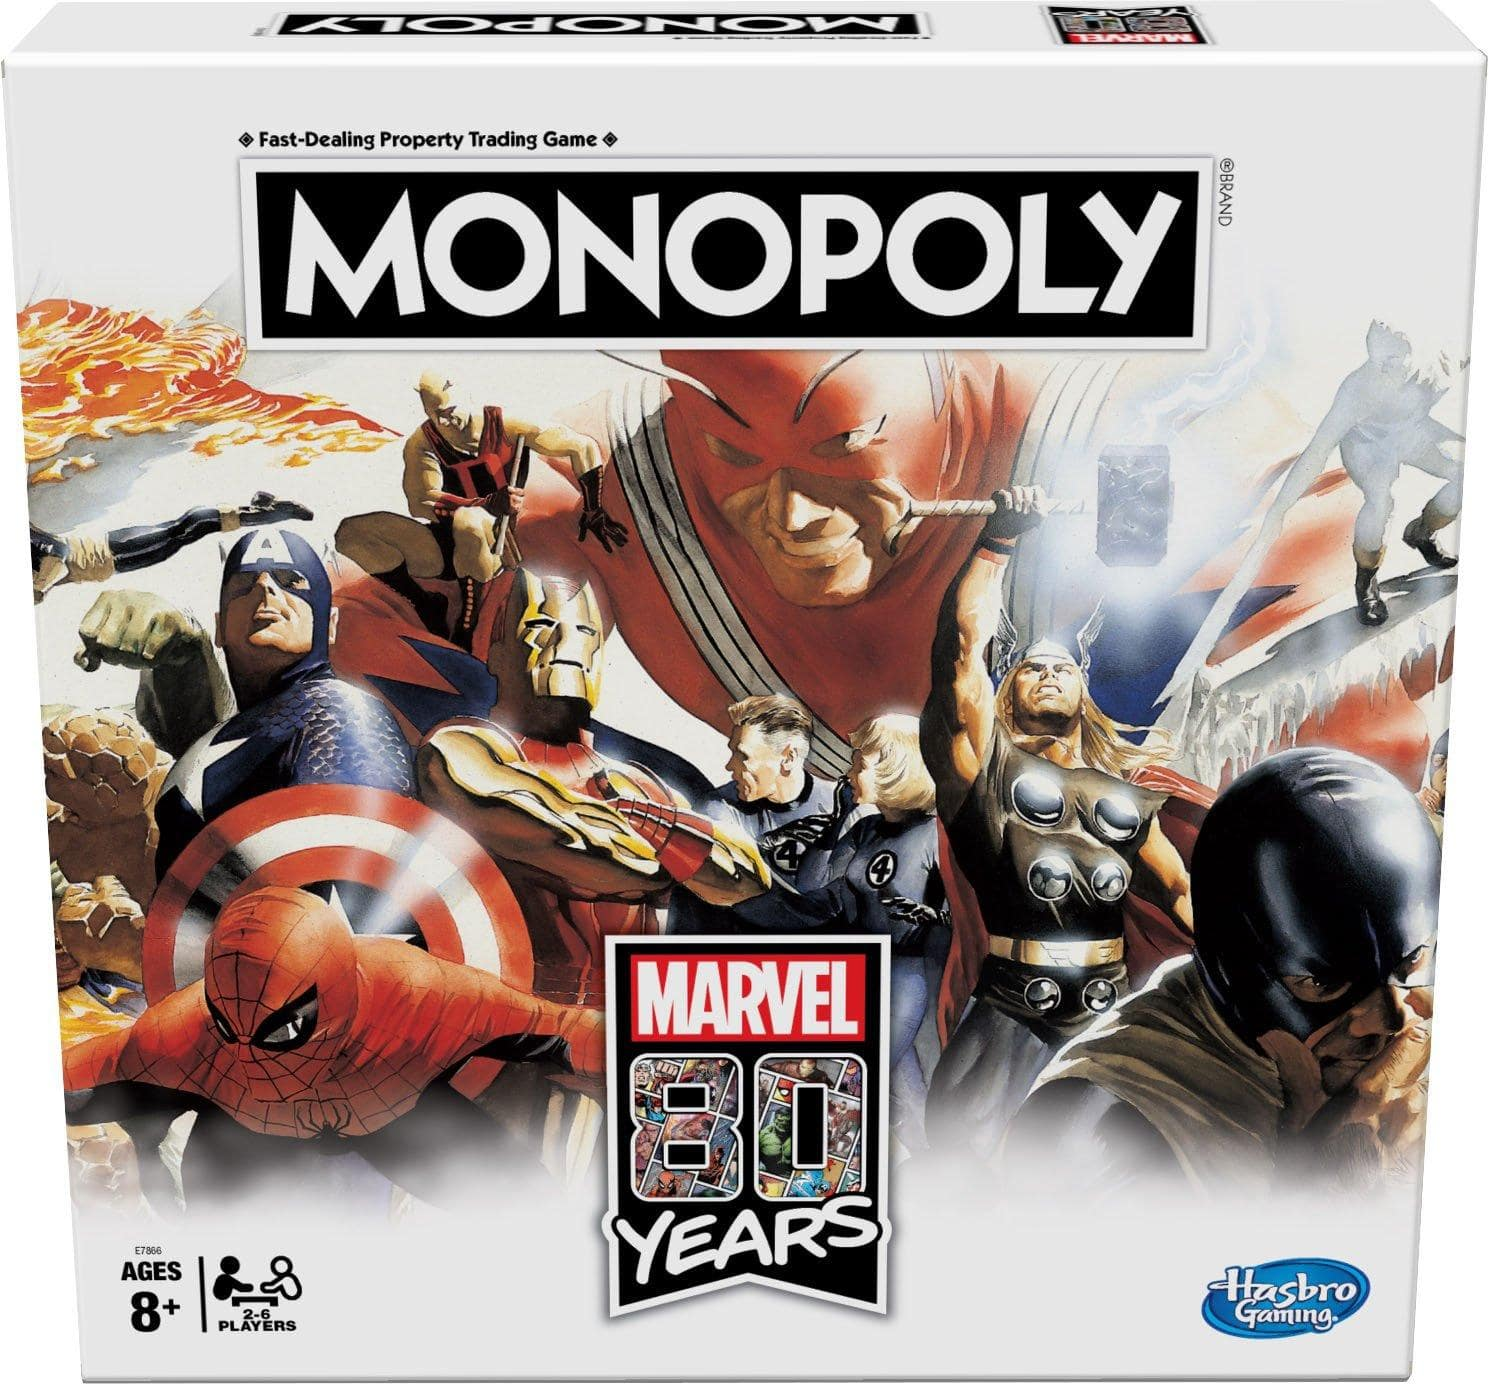 Monopoly Marvel 80 Years Edition Board Game $10 at GameStop